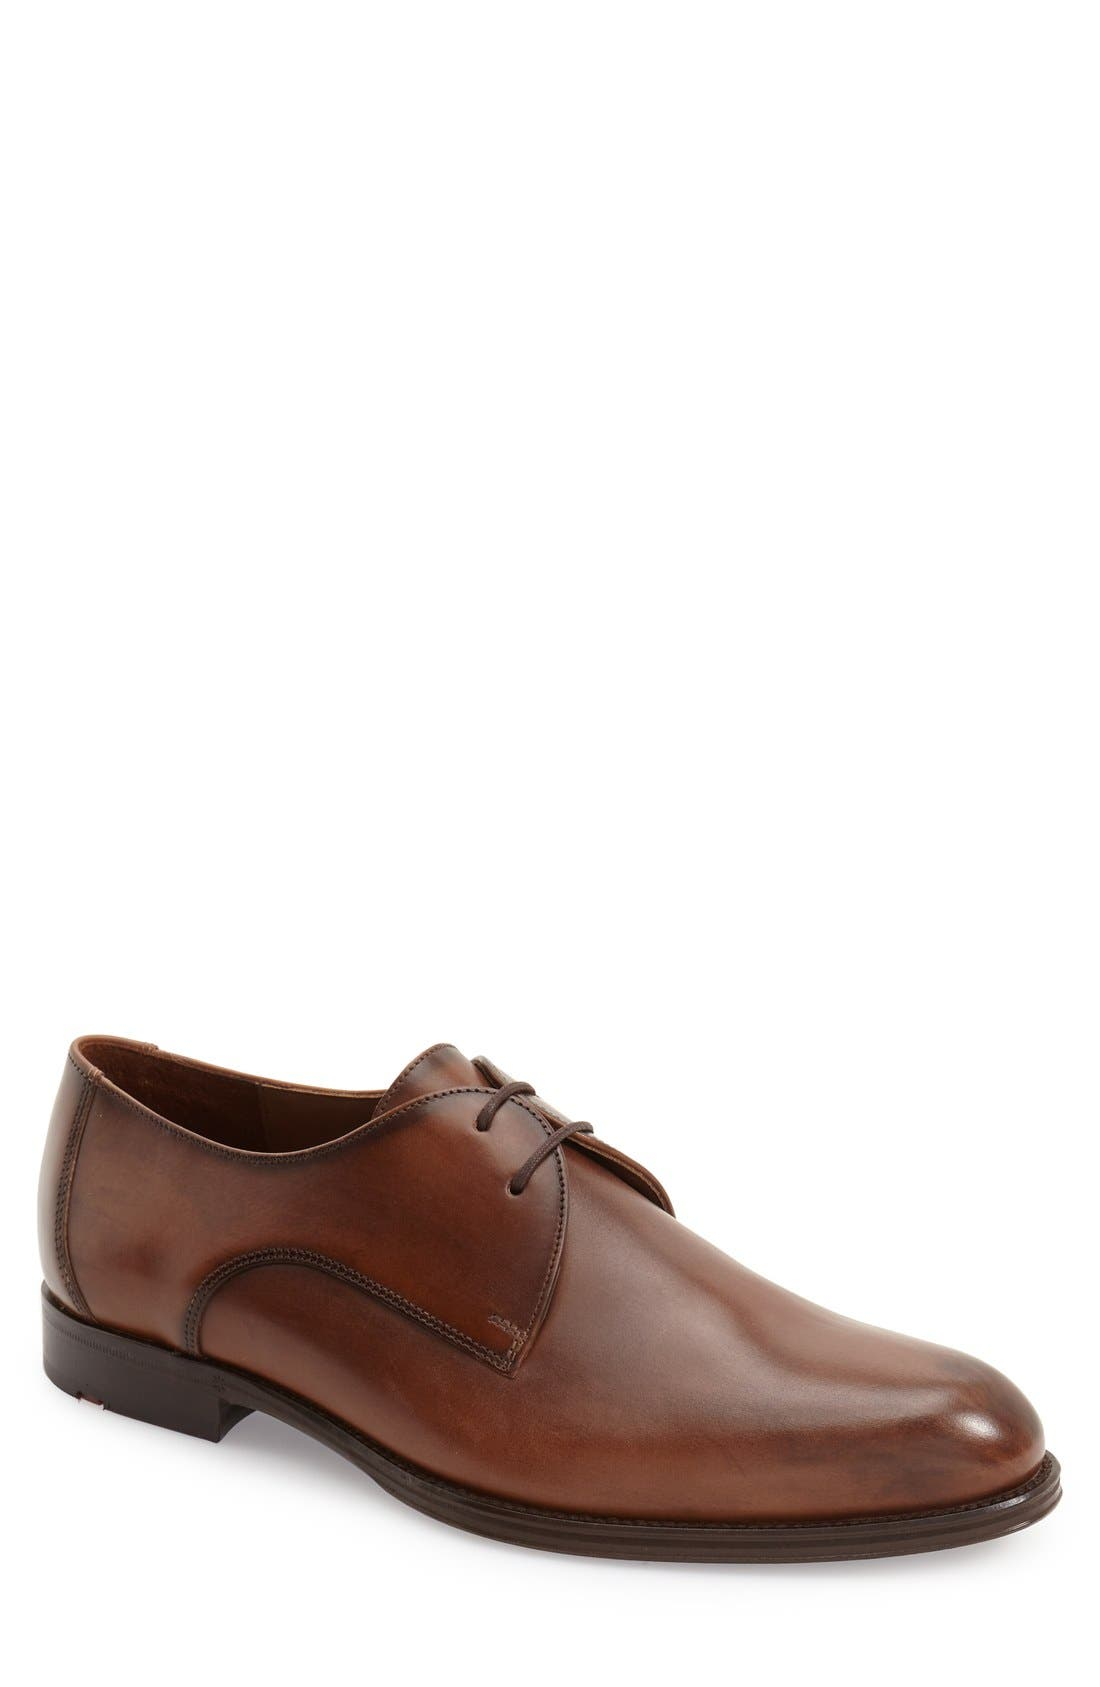 'Monza' Plain Toe Derby,                         Main,                         color,